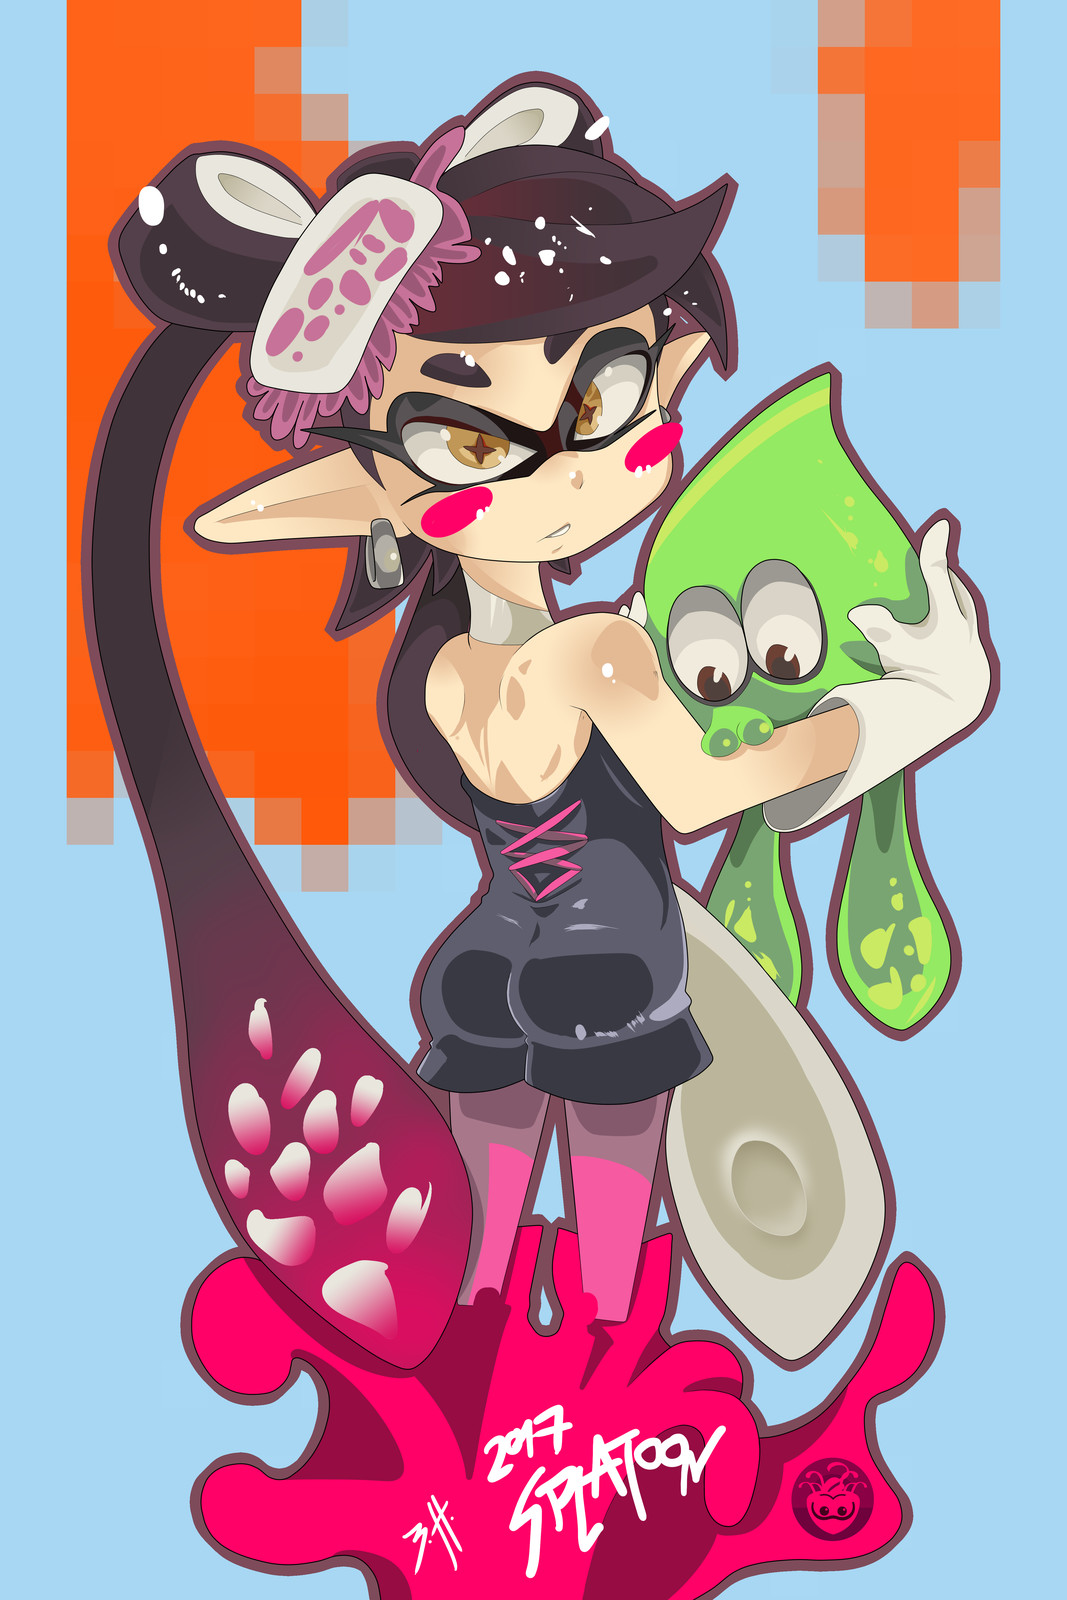 Callie's squid cuddle